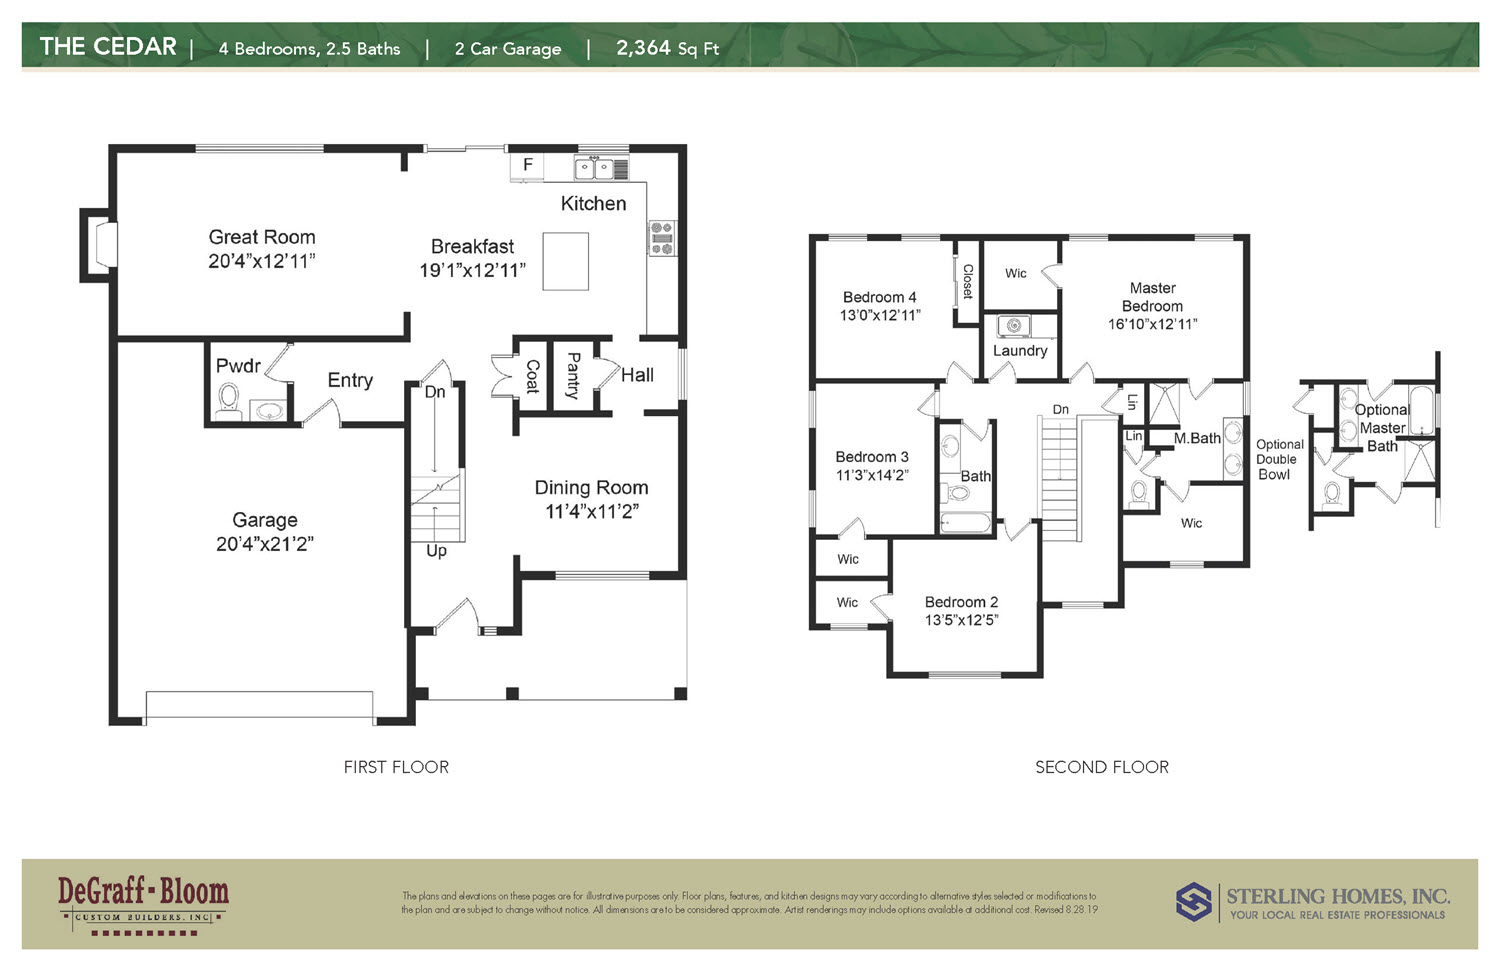 The Cedar Floorplan